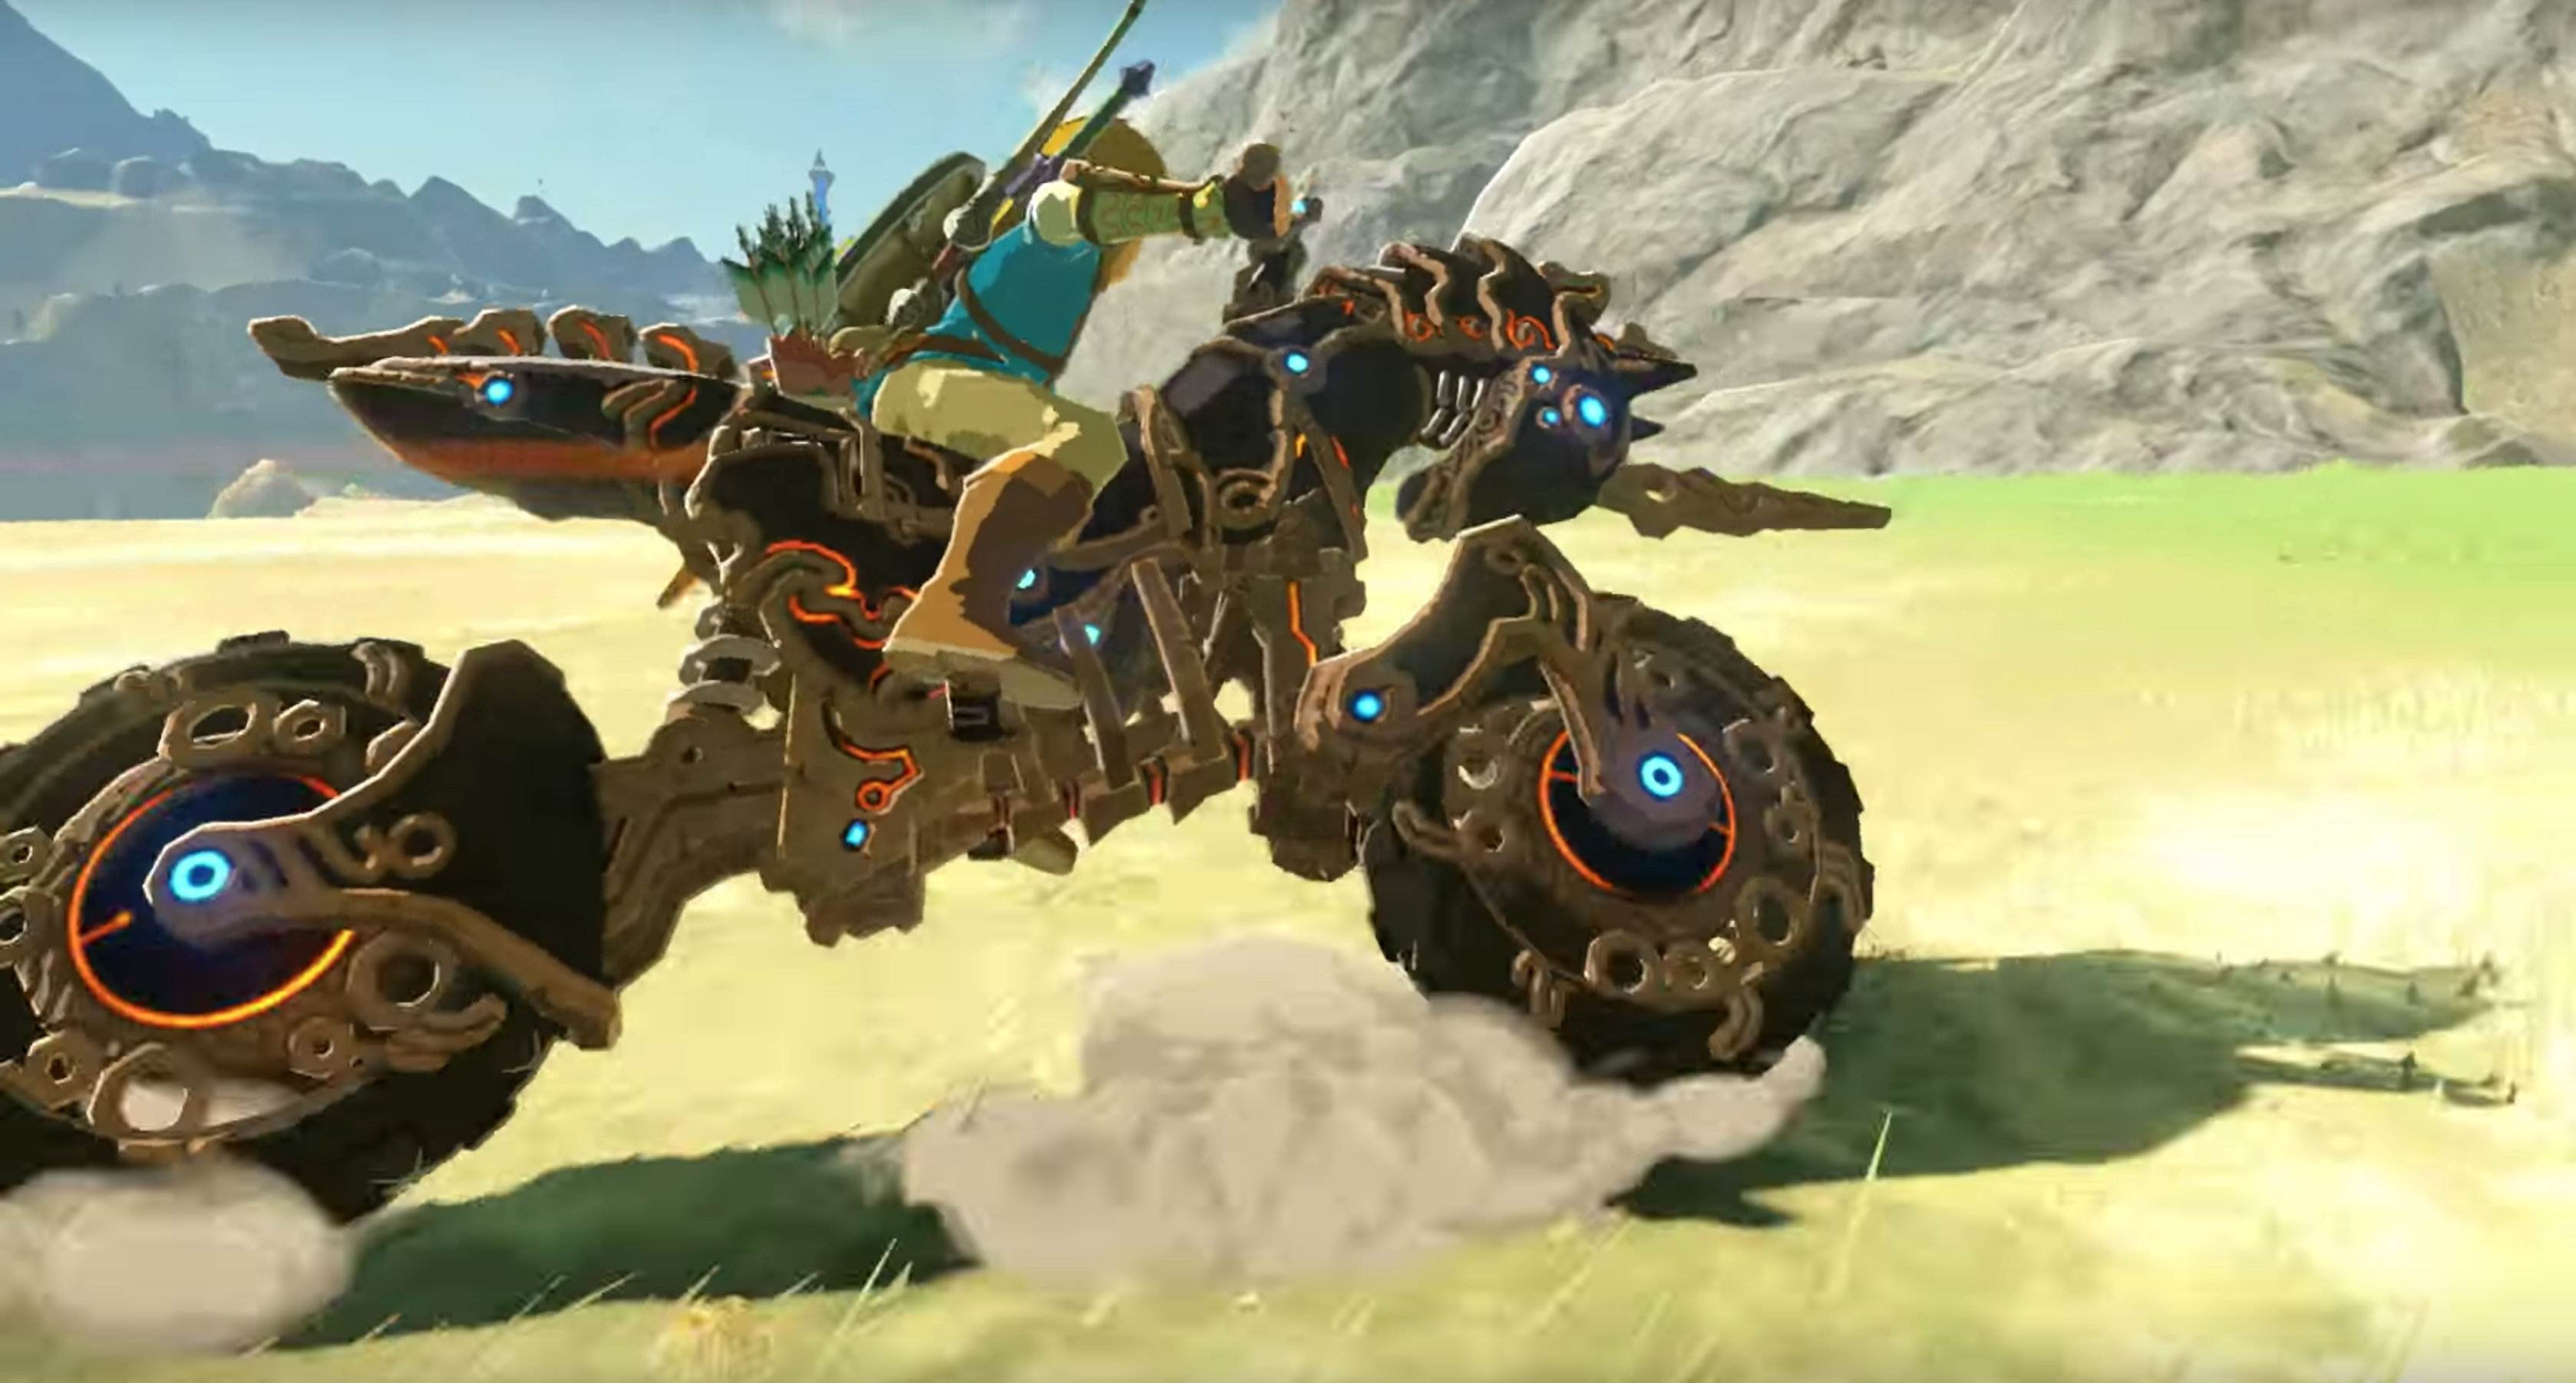 Zelda: Breath of the Wild DLC Pack 2 Ballad of Champions Just Launched